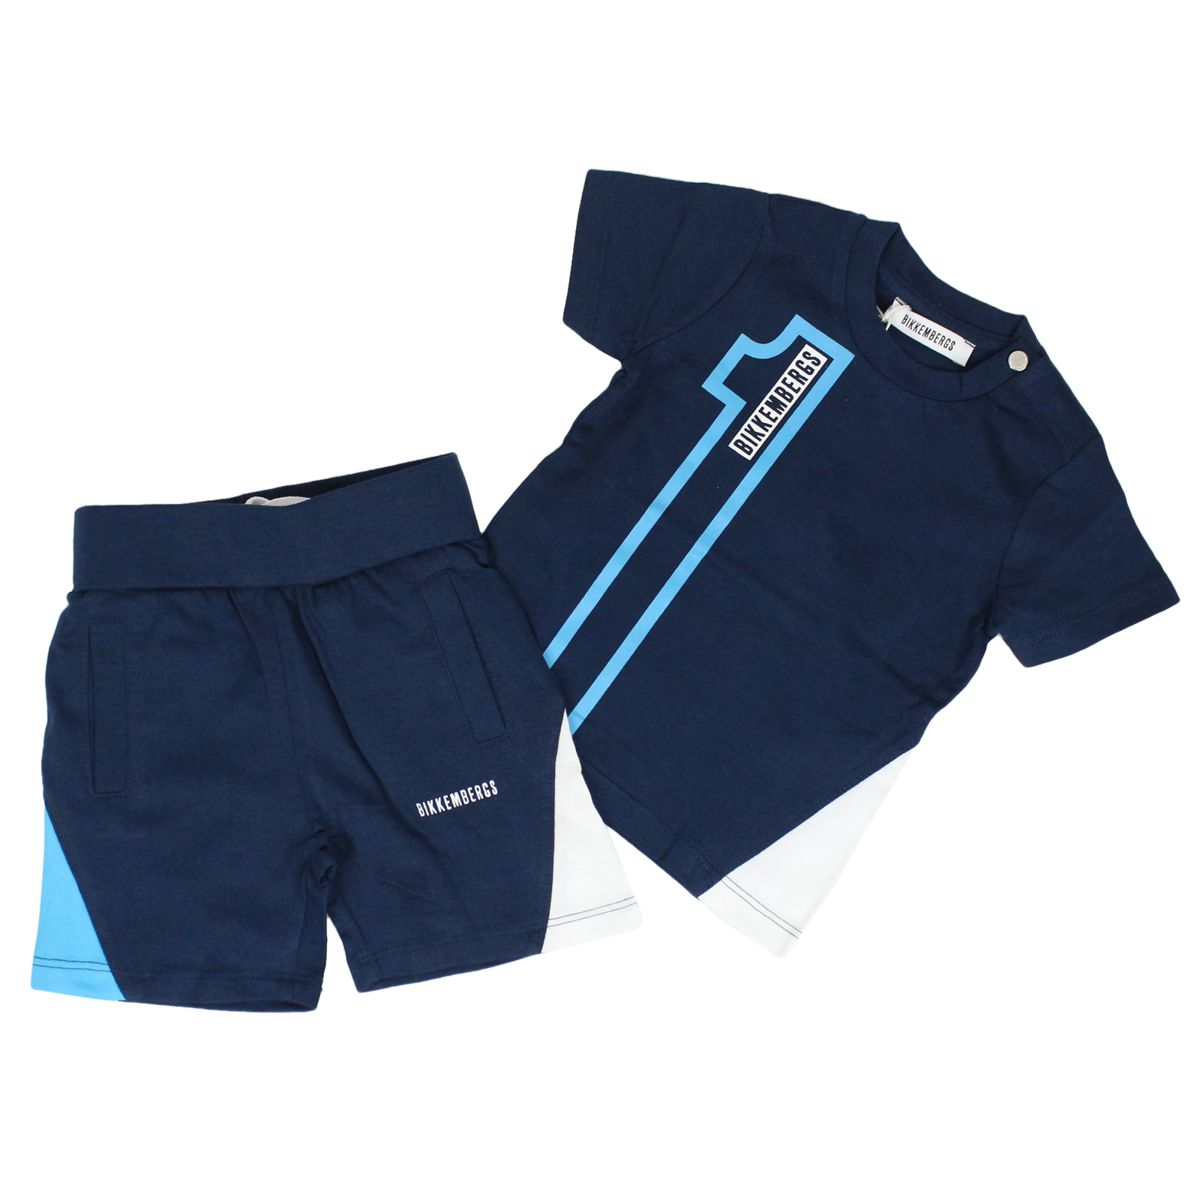 Cotton t-shirt and pants set Blue BIKKEMBERGS